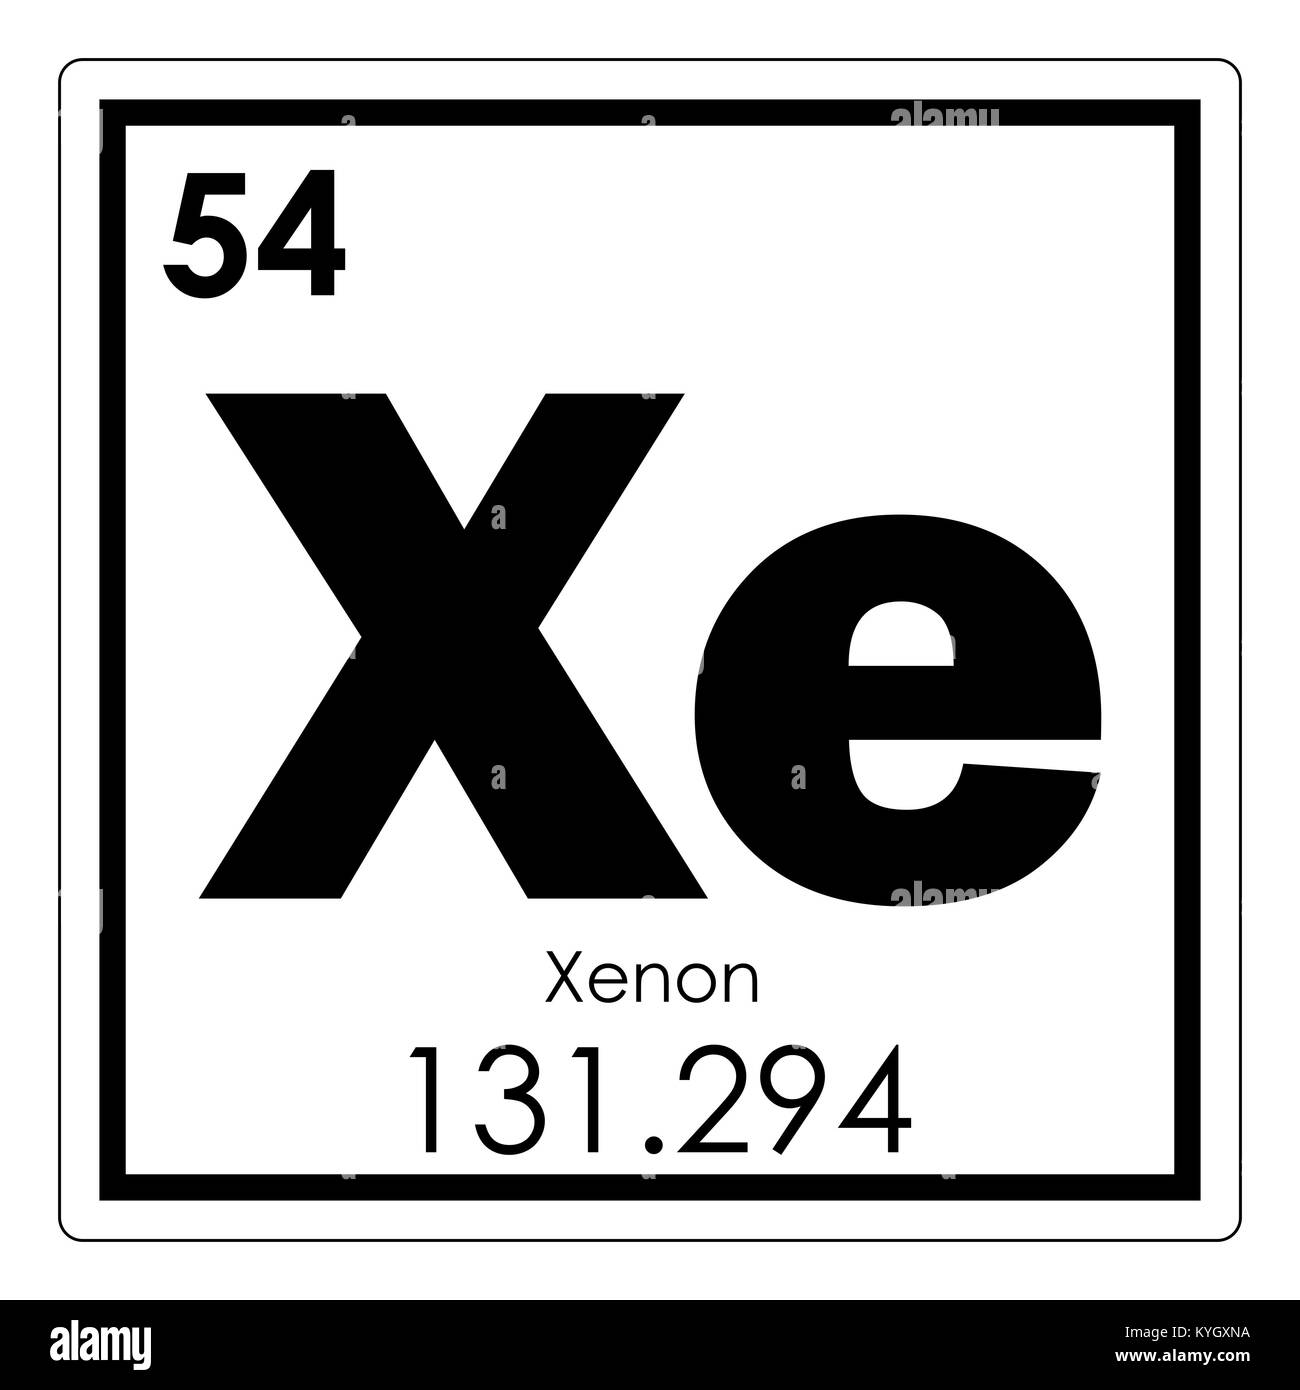 Xenon chemical element periodic table science symbol stock photo xenon chemical element periodic table science symbol urtaz Gallery